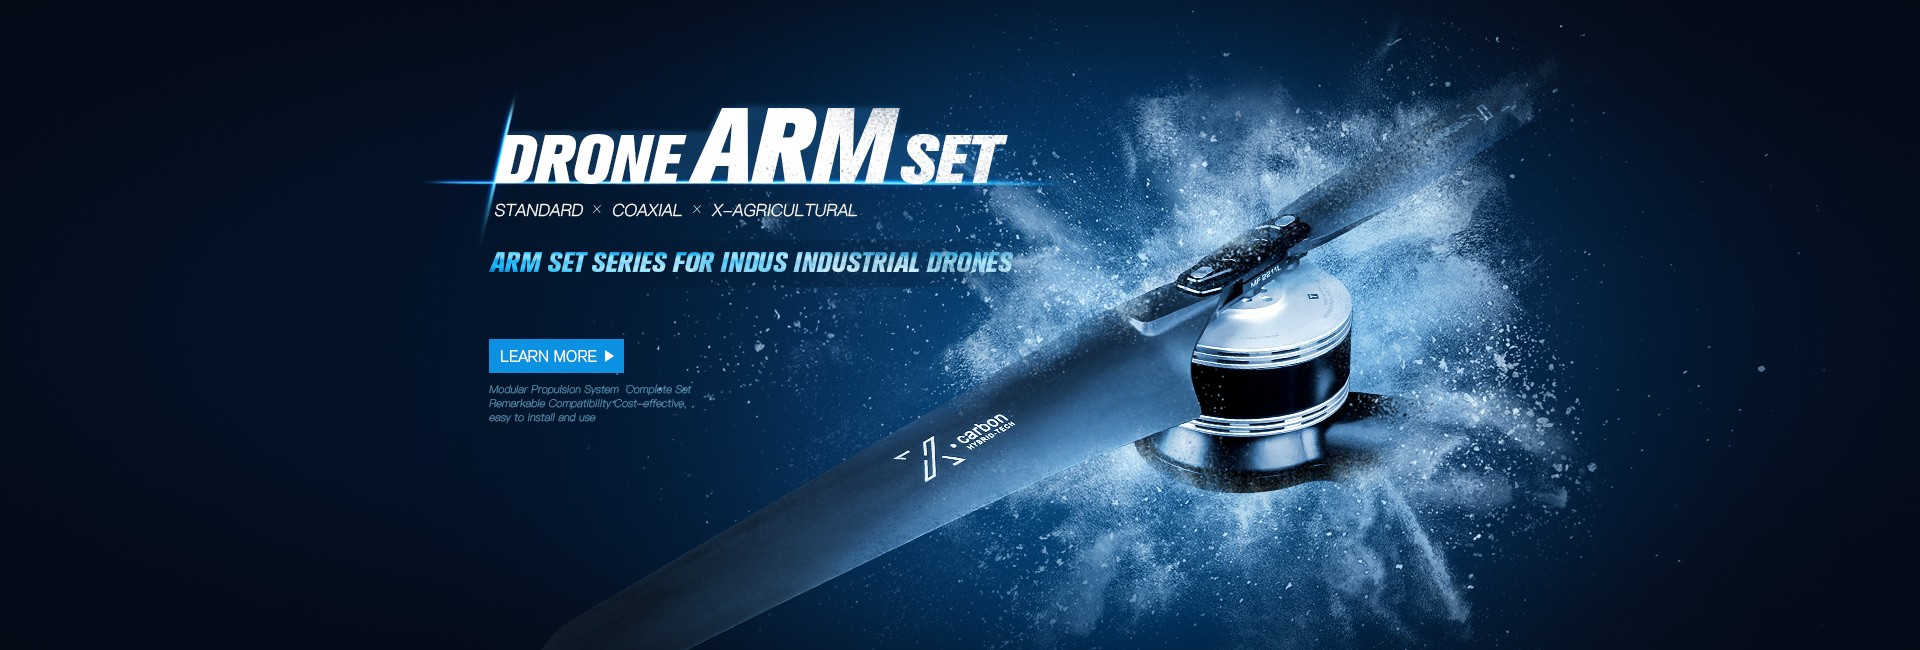 T-Motor Drone Arm Sets